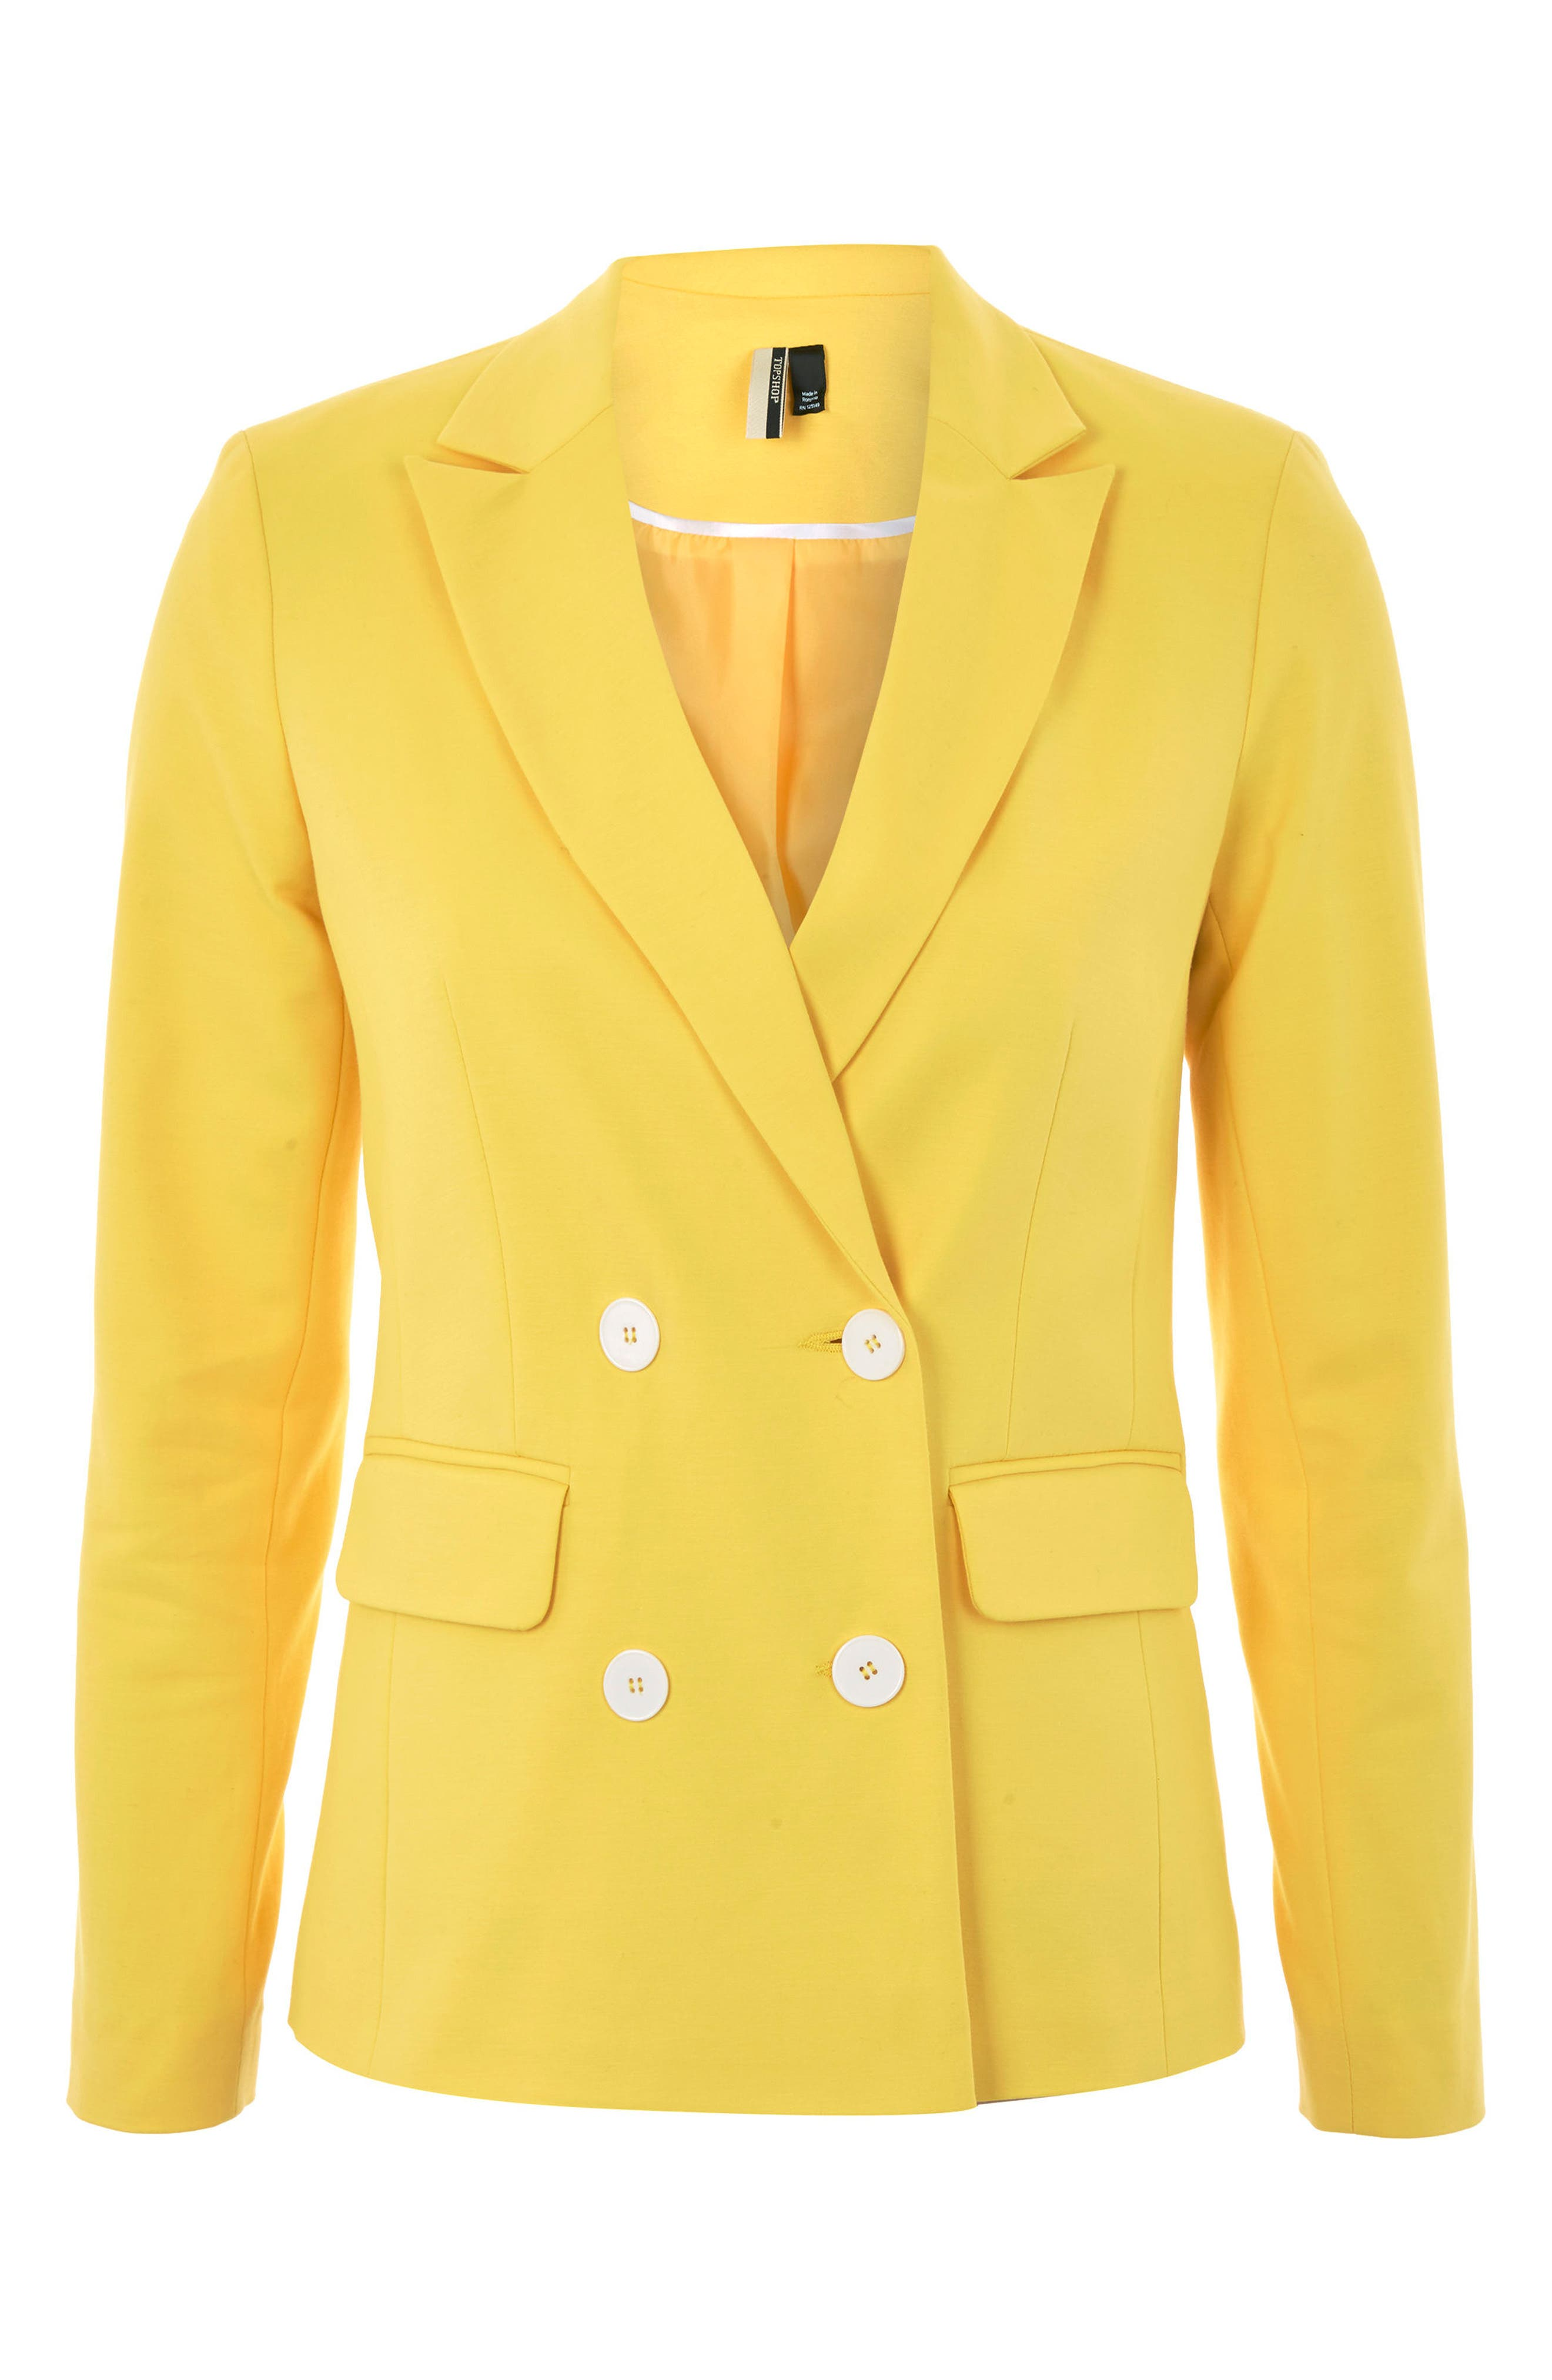 Milly Double Breasted Suit Jacket,                             Alternate thumbnail 4, color,                             Yellow